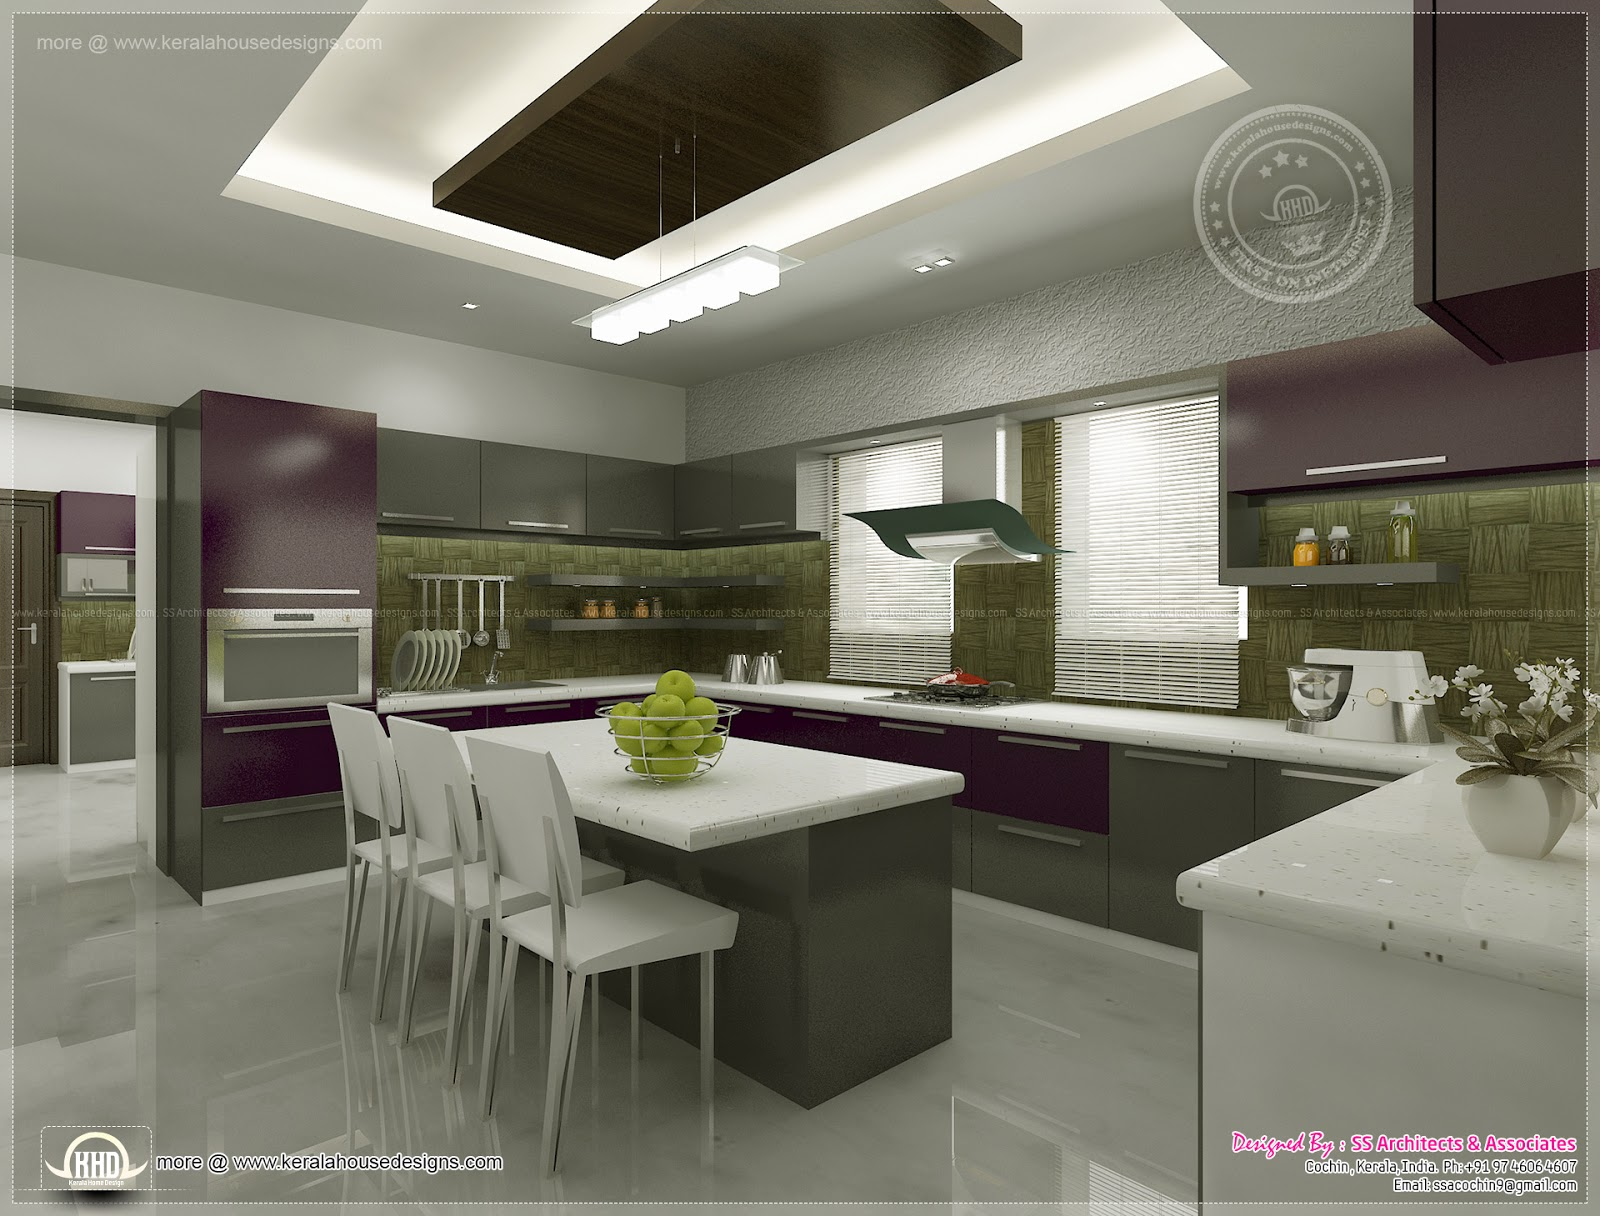 Kitchen interior views by ss architects cochin kerala for In house designer